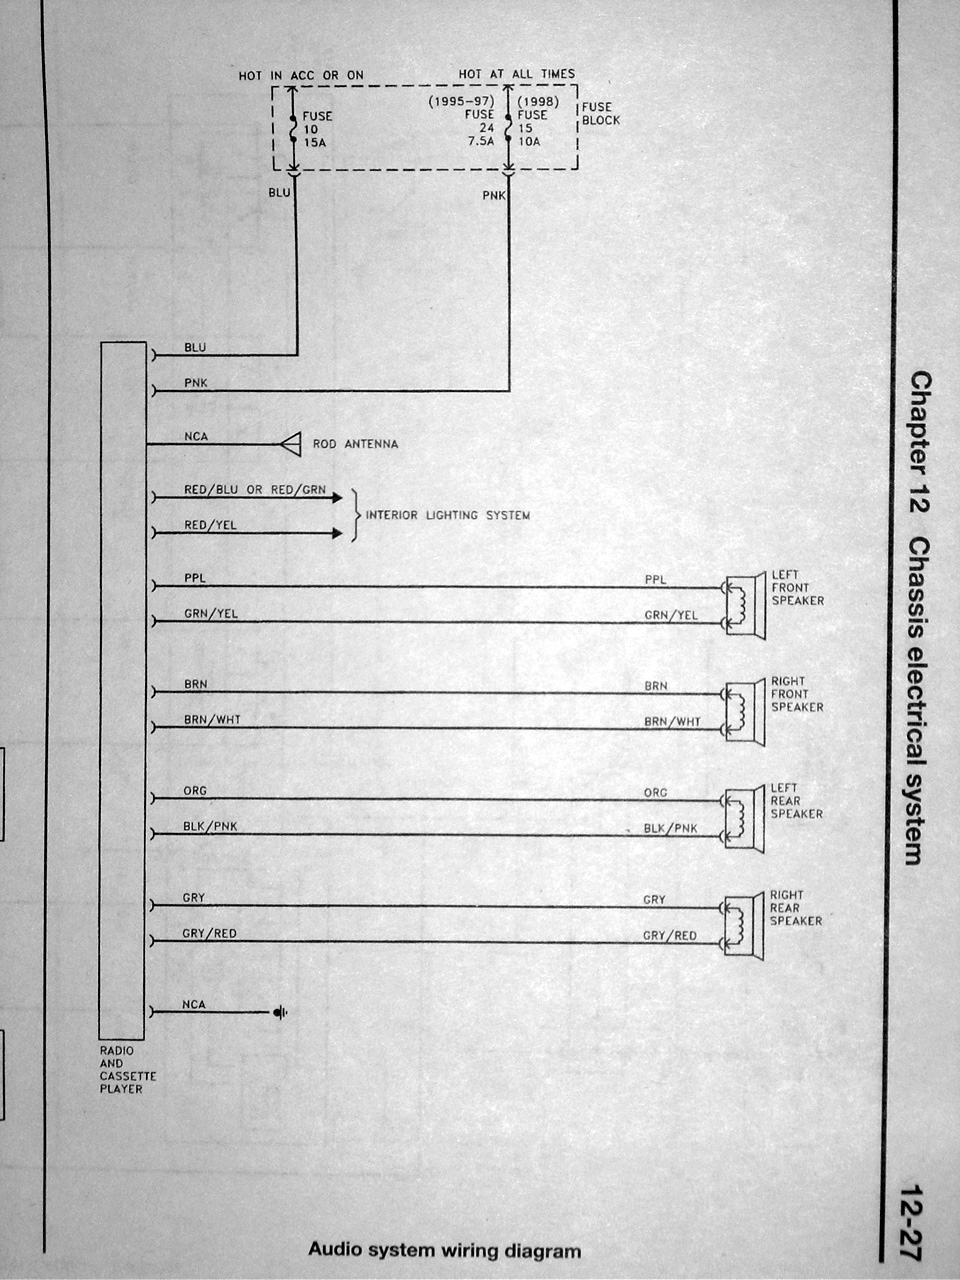 DSC01849 wiring diagram thread *useful info* nissan forum 2007 nissan 350z stereo wiring diagram at gsmx.co